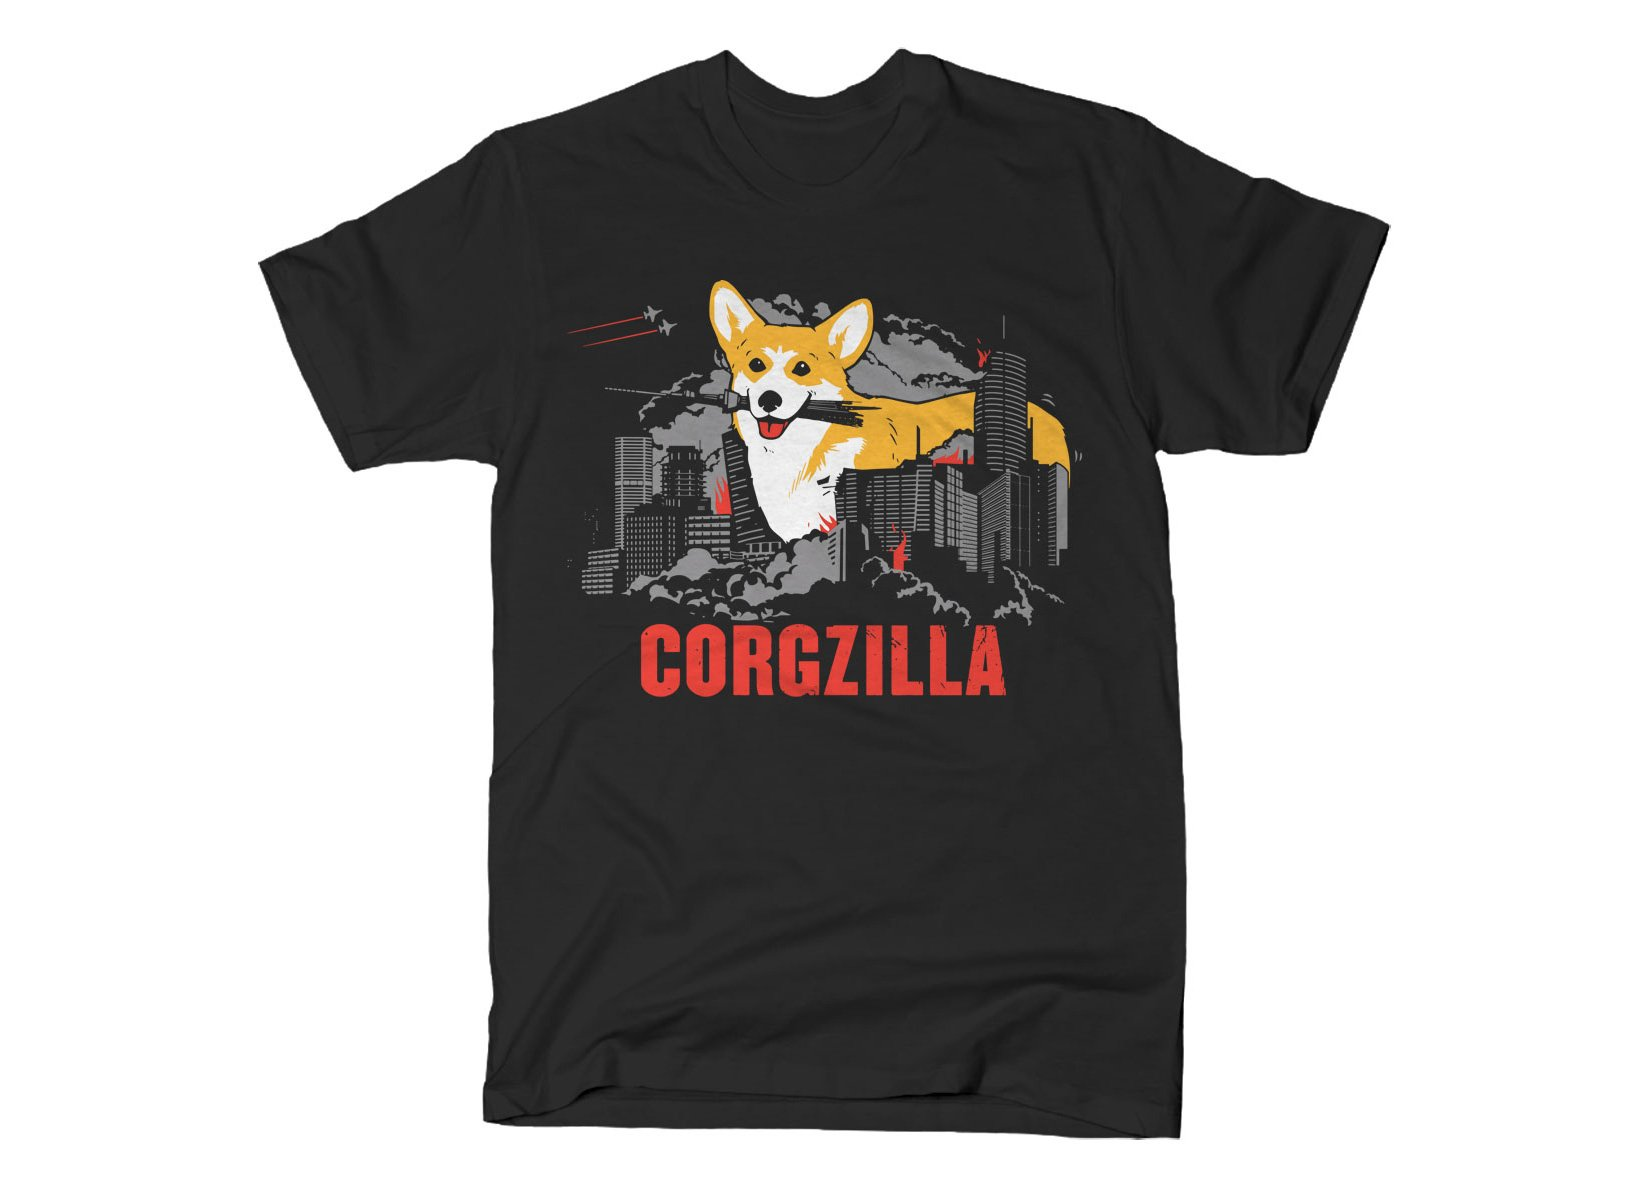 Corgzilla on Mens T-Shirt